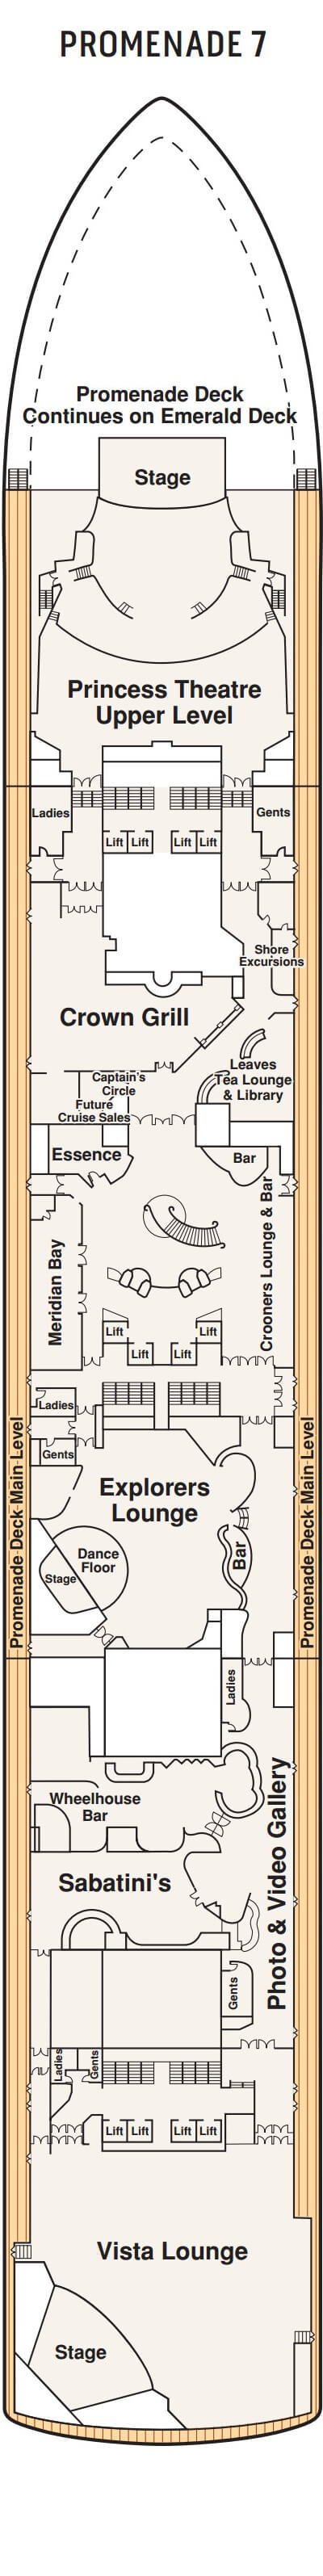 Grand Princess Promenade Deck 7 layout